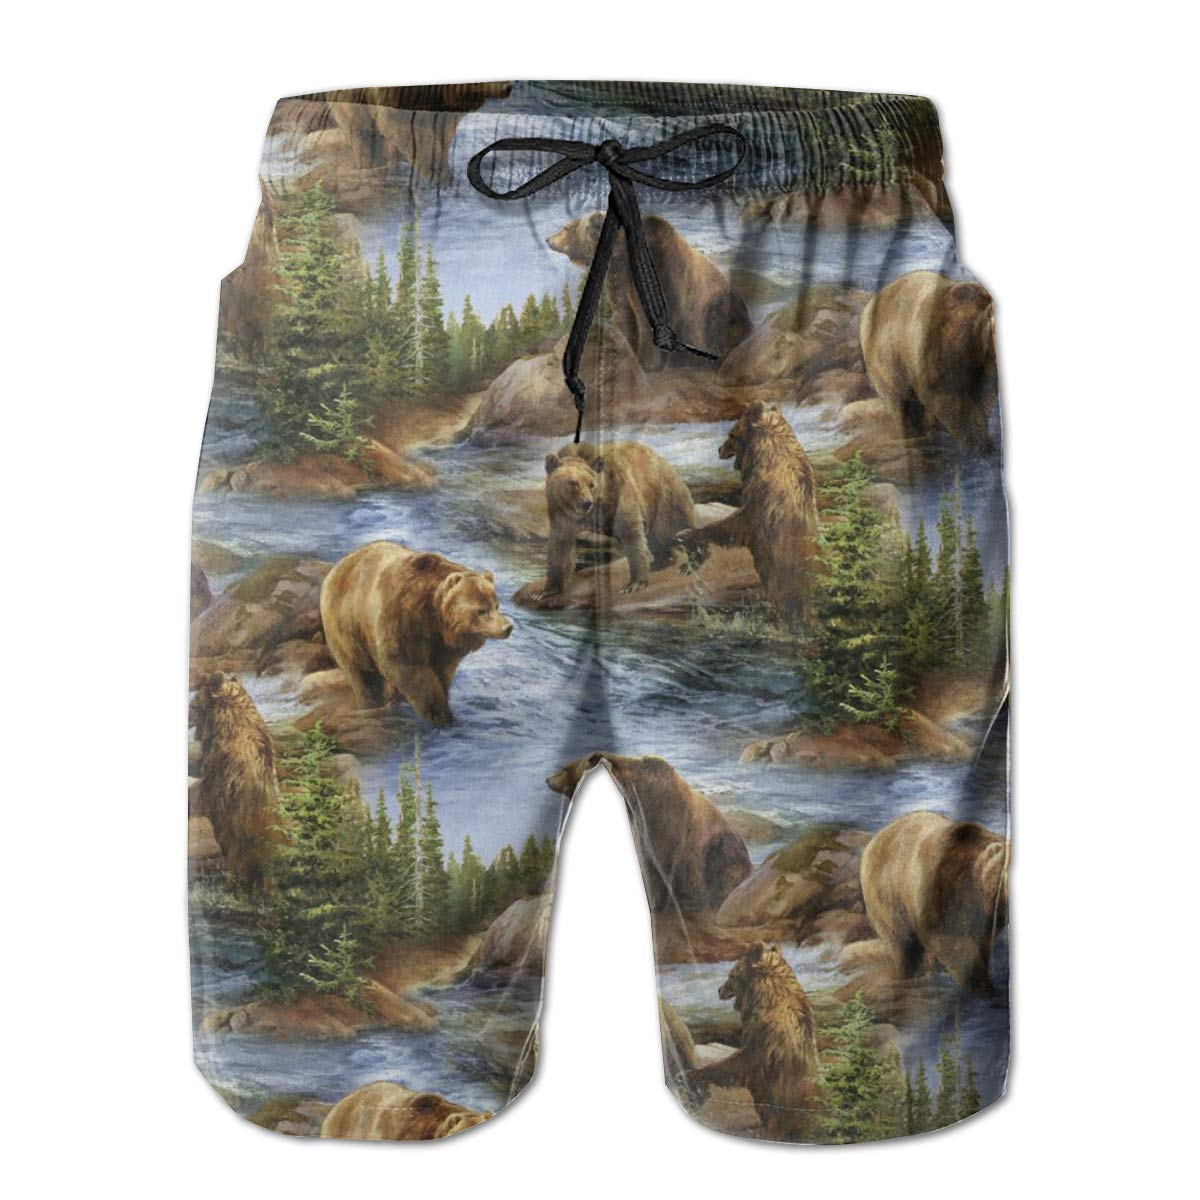 Mens Swim Trunks New Brown Grizzly Bears Wildlife Quick Dry Beach Board Shorts with Mesh Lining